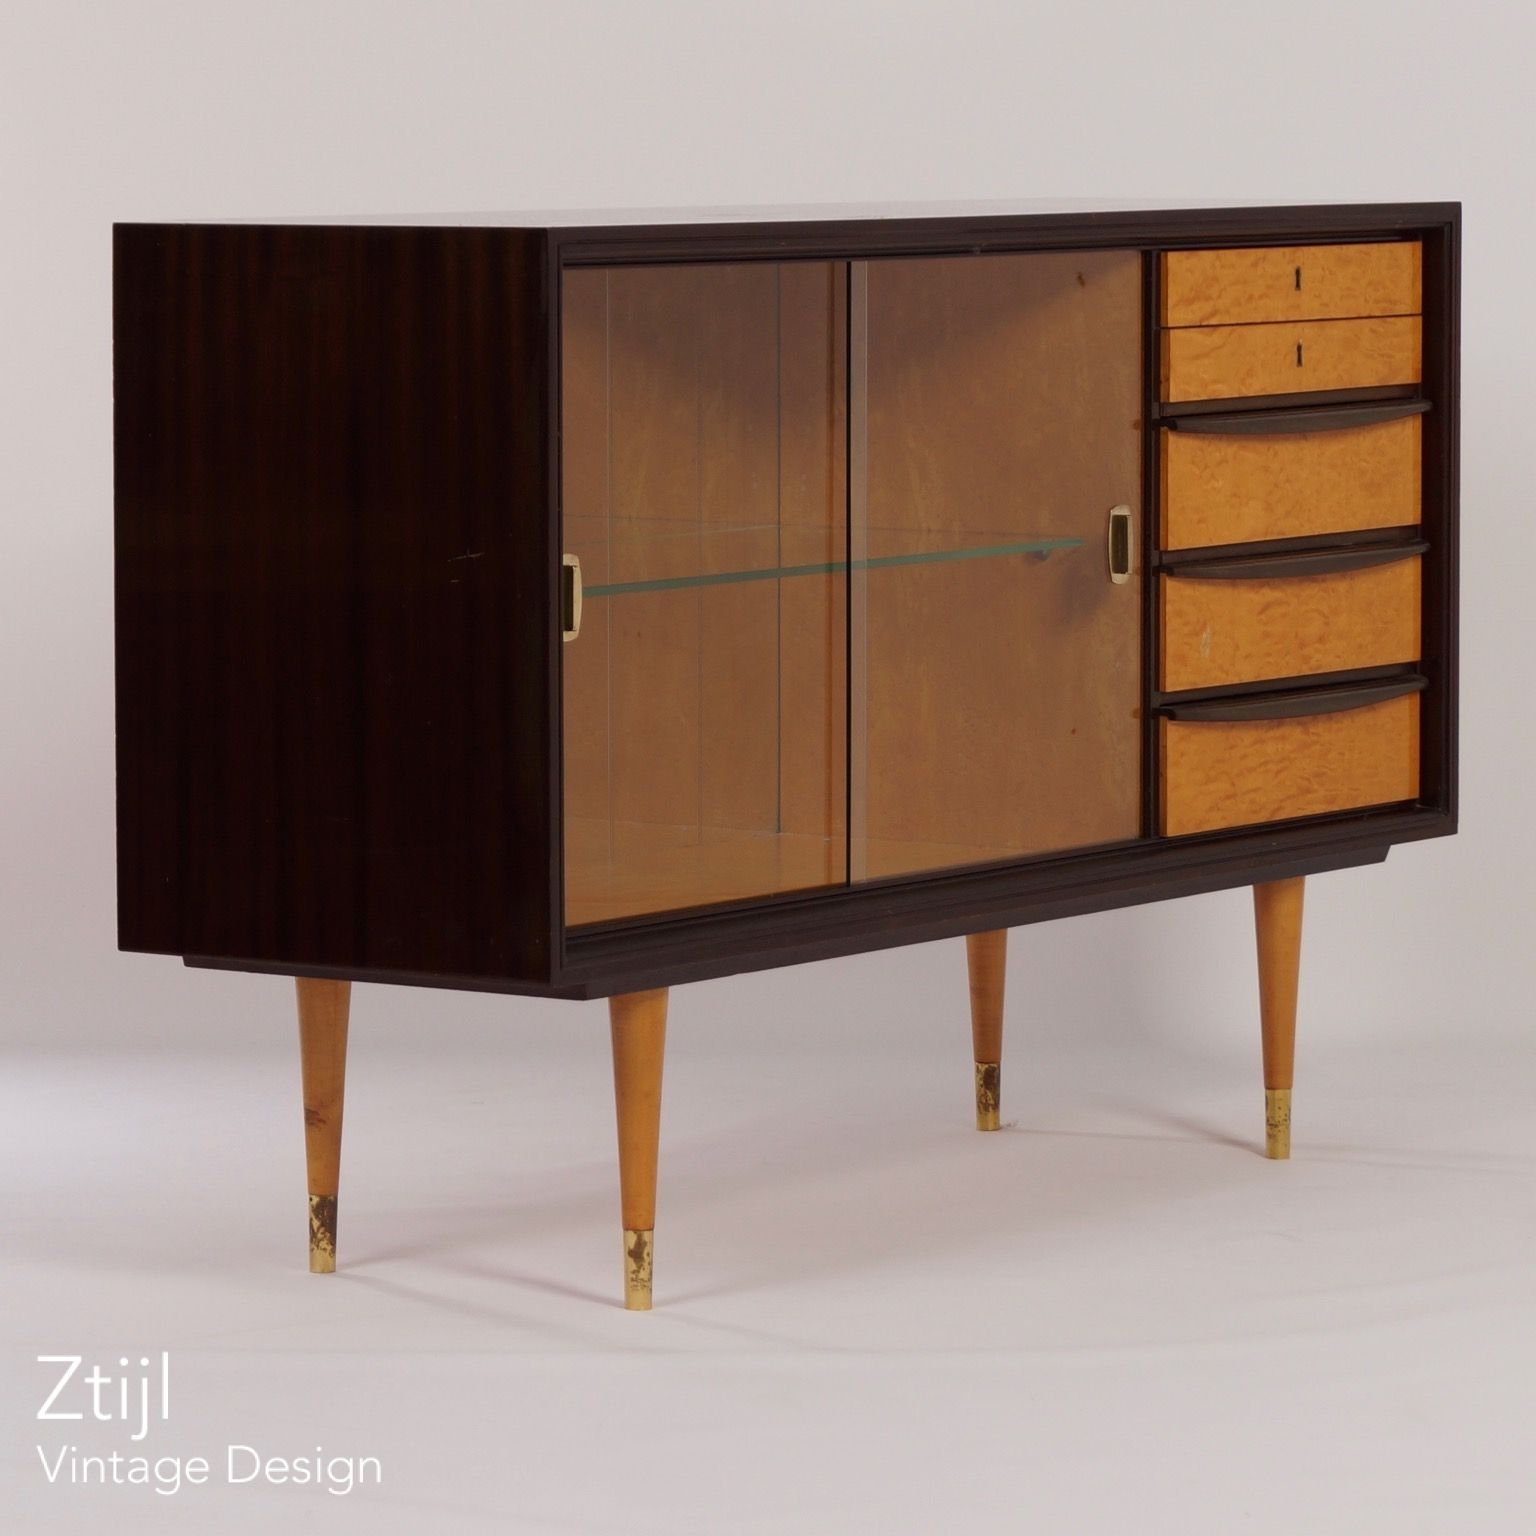 Mahogany Sideboard With Showcase And Brass Details, 1960S - Vintage intended for Vintage 8 Glass Sideboards (Image 14 of 30)